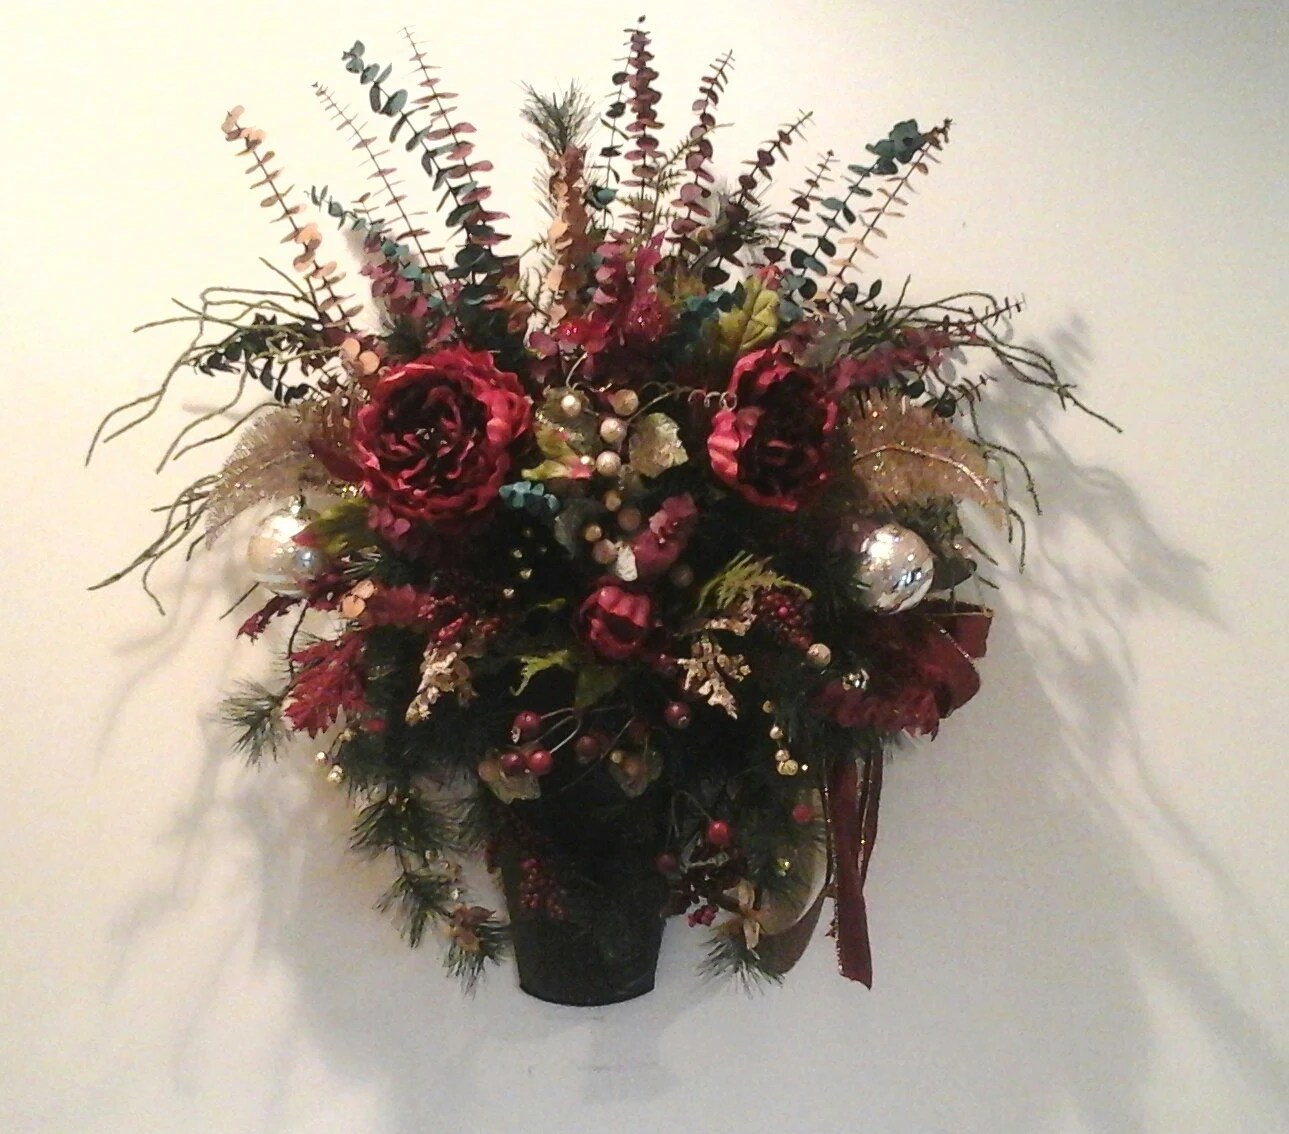 Christmas Floral Arrangement Wall Sconce Planter Wall on Wall Sconce Floral Arrangements Arrangement id=85217